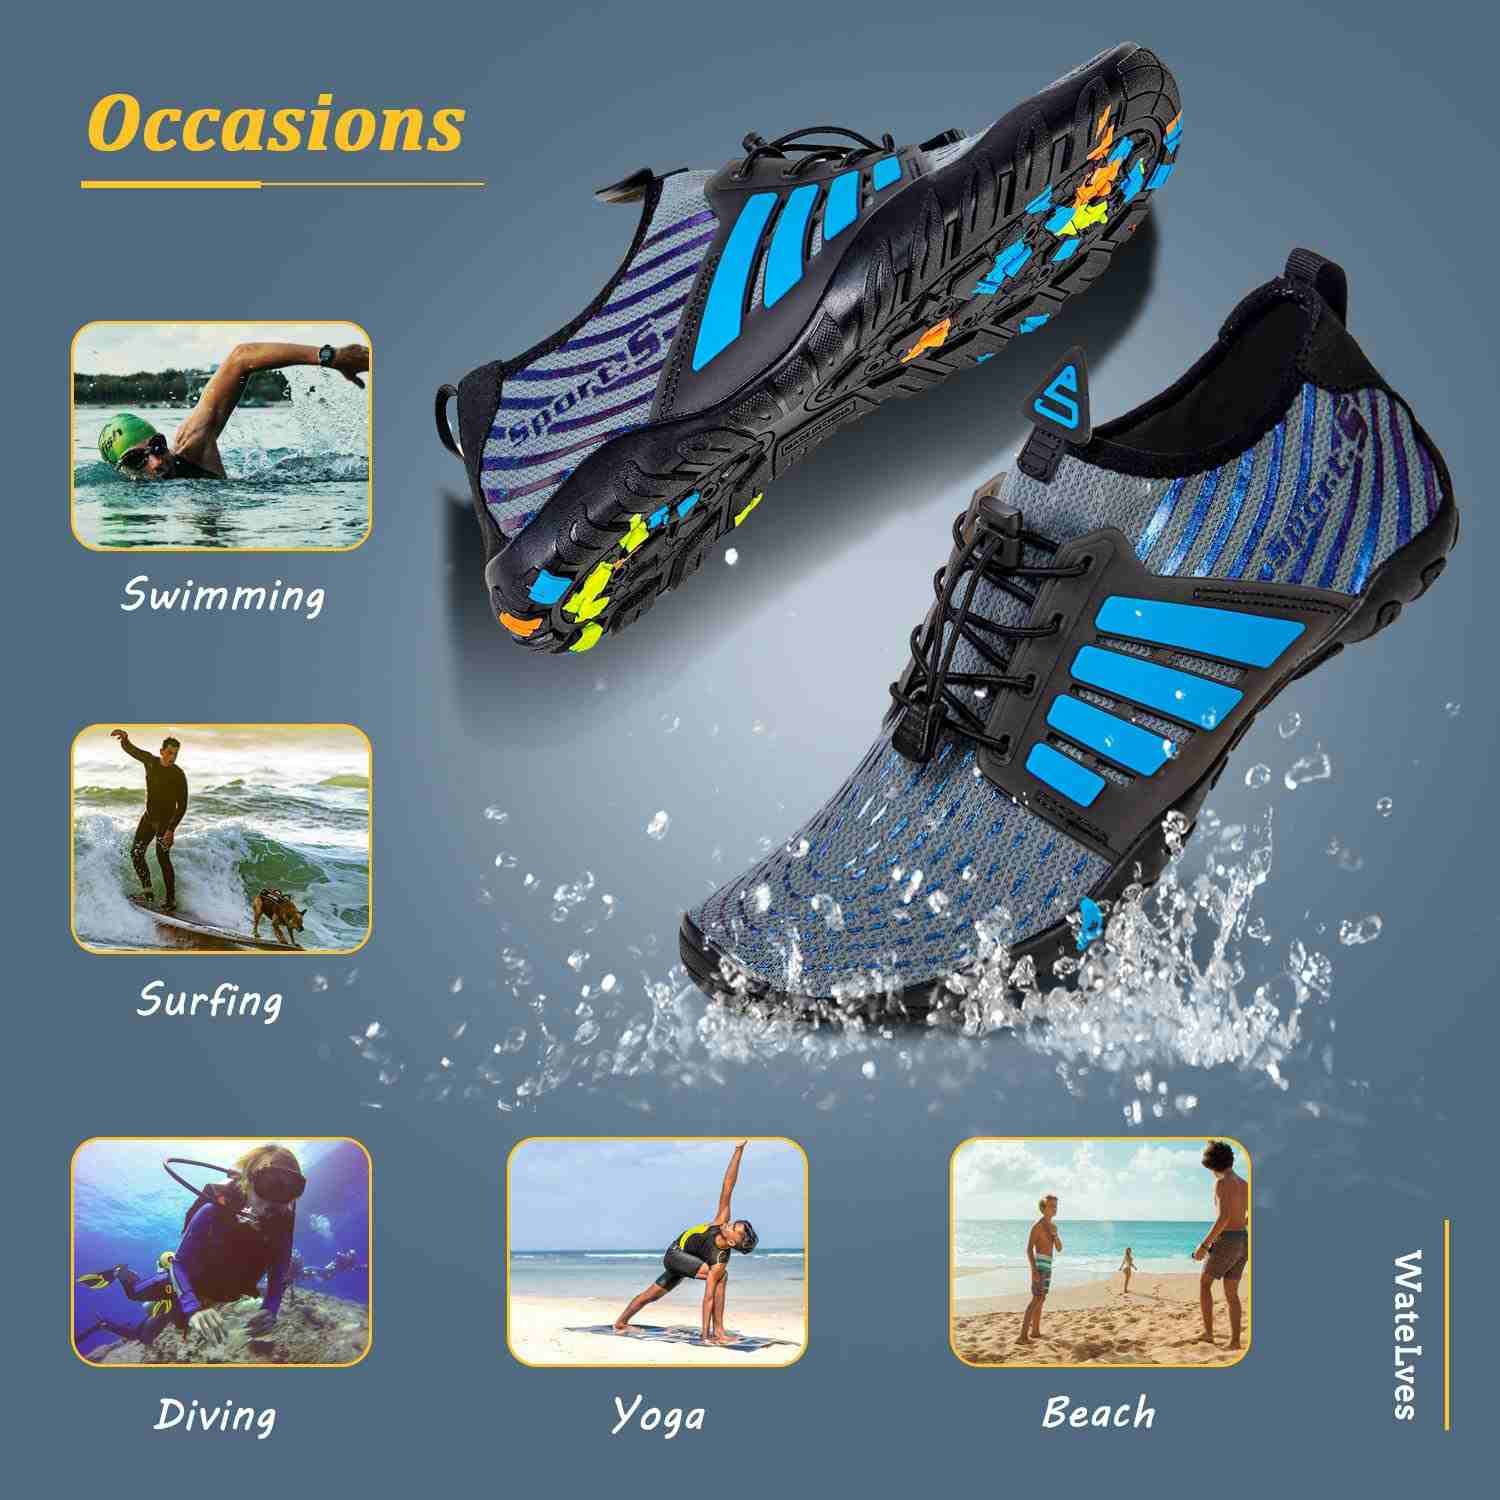 Activities to wear water shoes to